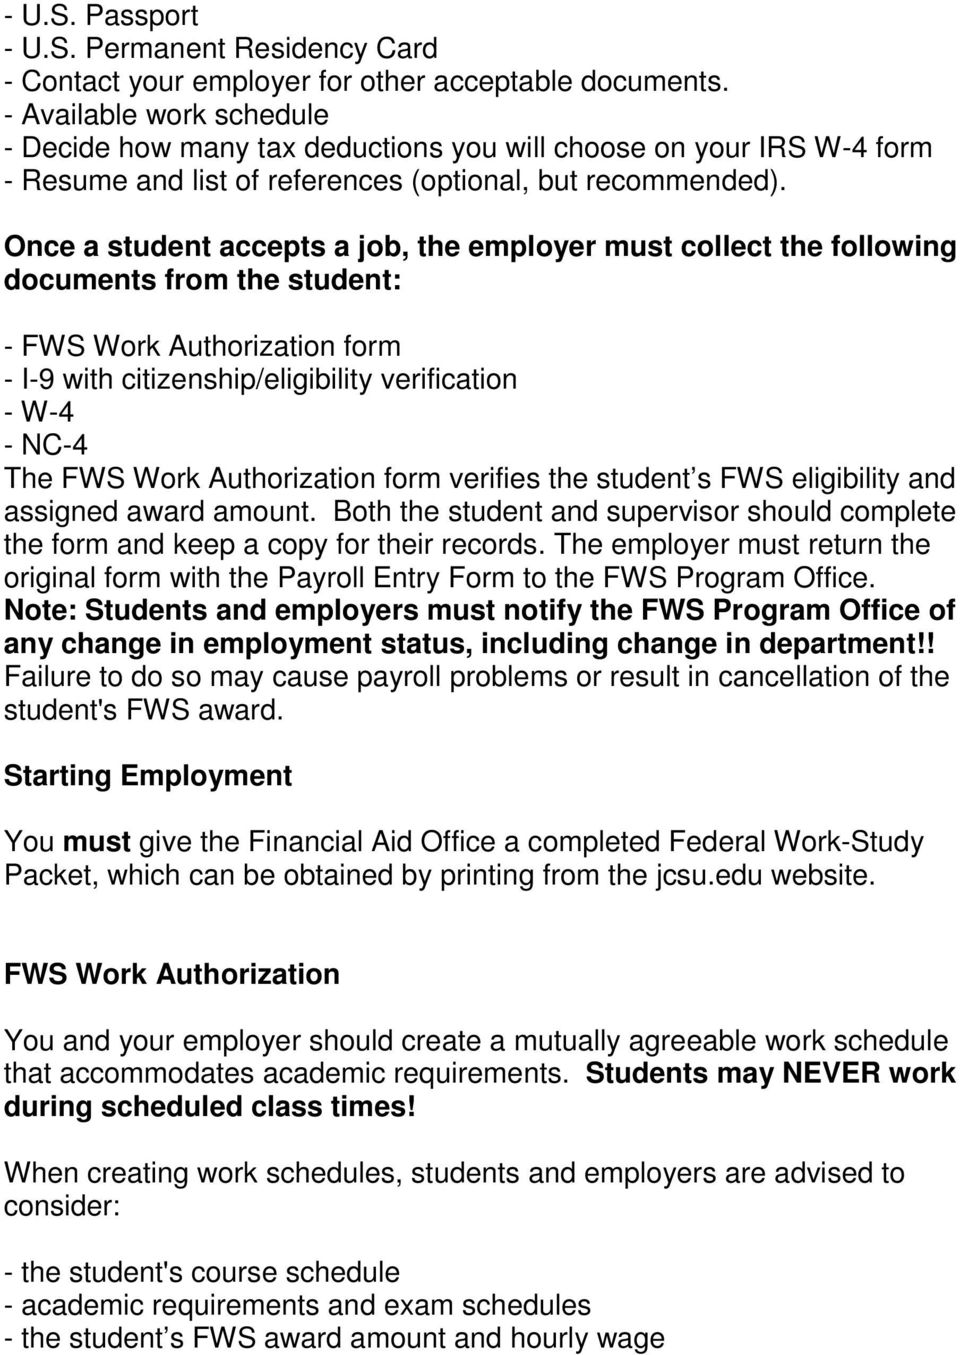 Once a student accepts a job, the employer must collect the following documents from the student: - FWS Work Authorization form - I-9 with citizenship/eligibility verification - W-4 - NC-4 The FWS